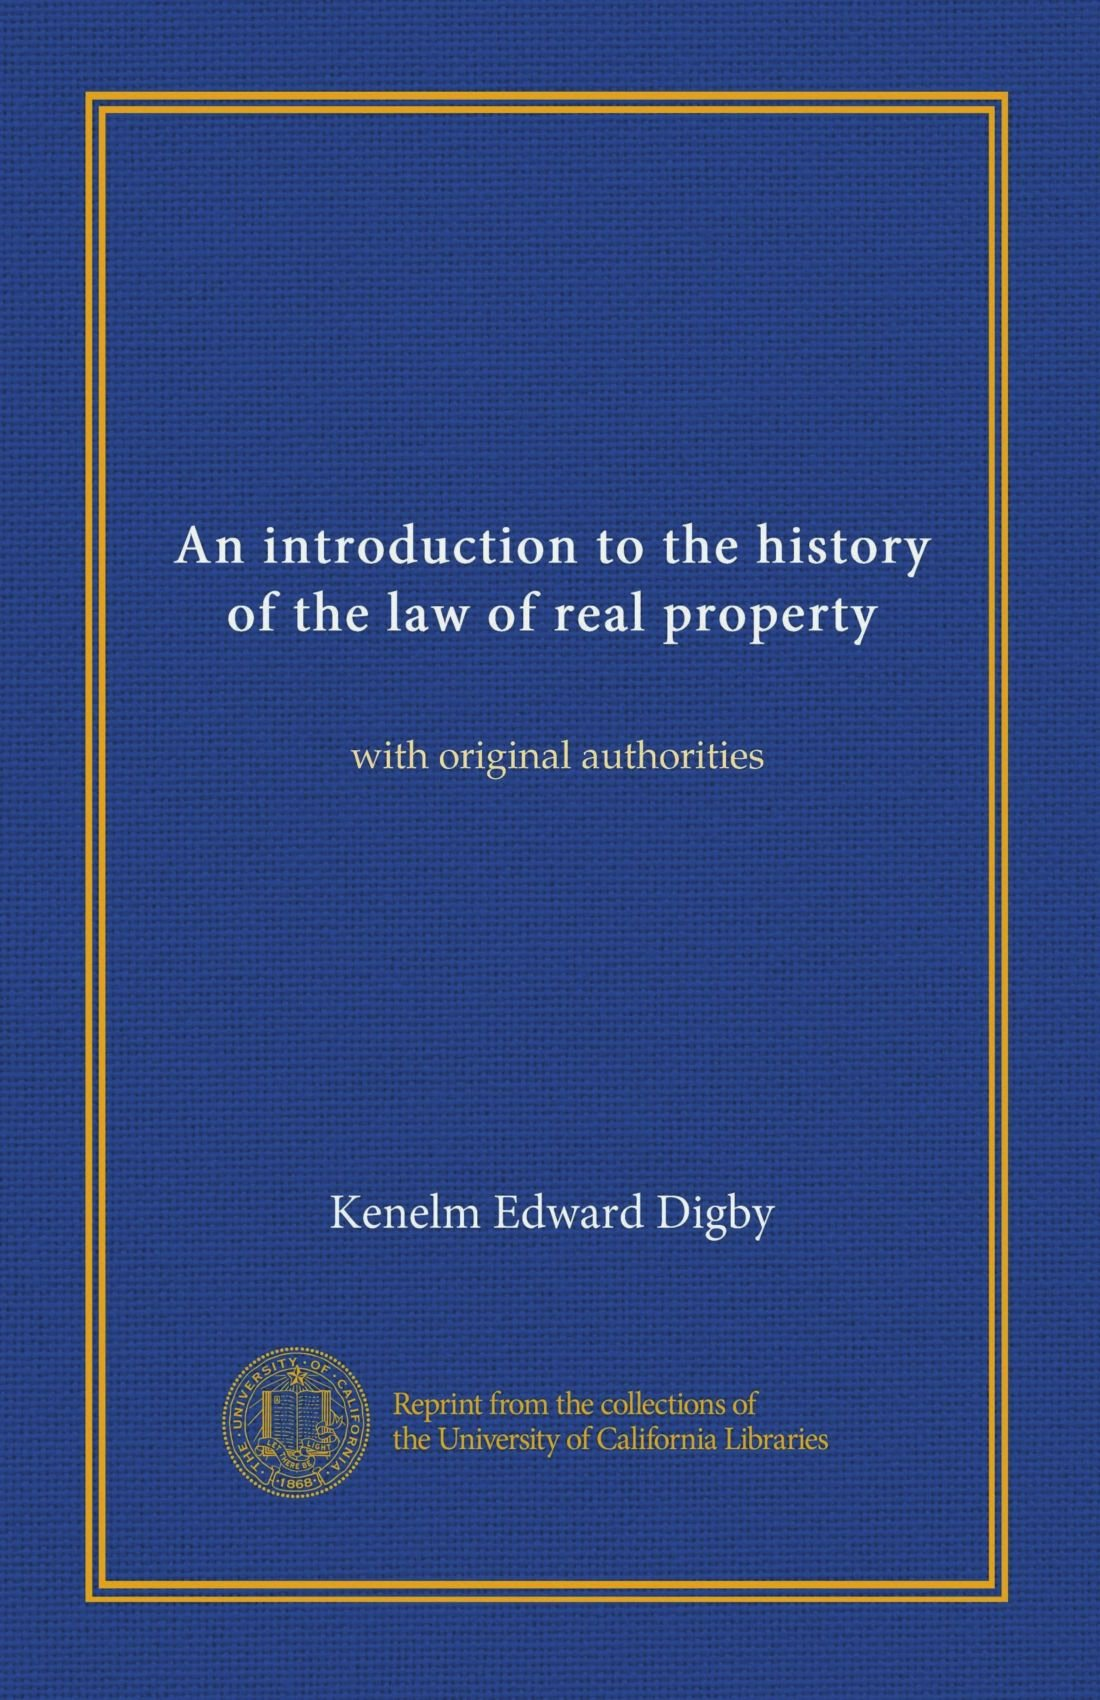 An introduction to the history of the law of real property: with original authorities pdf